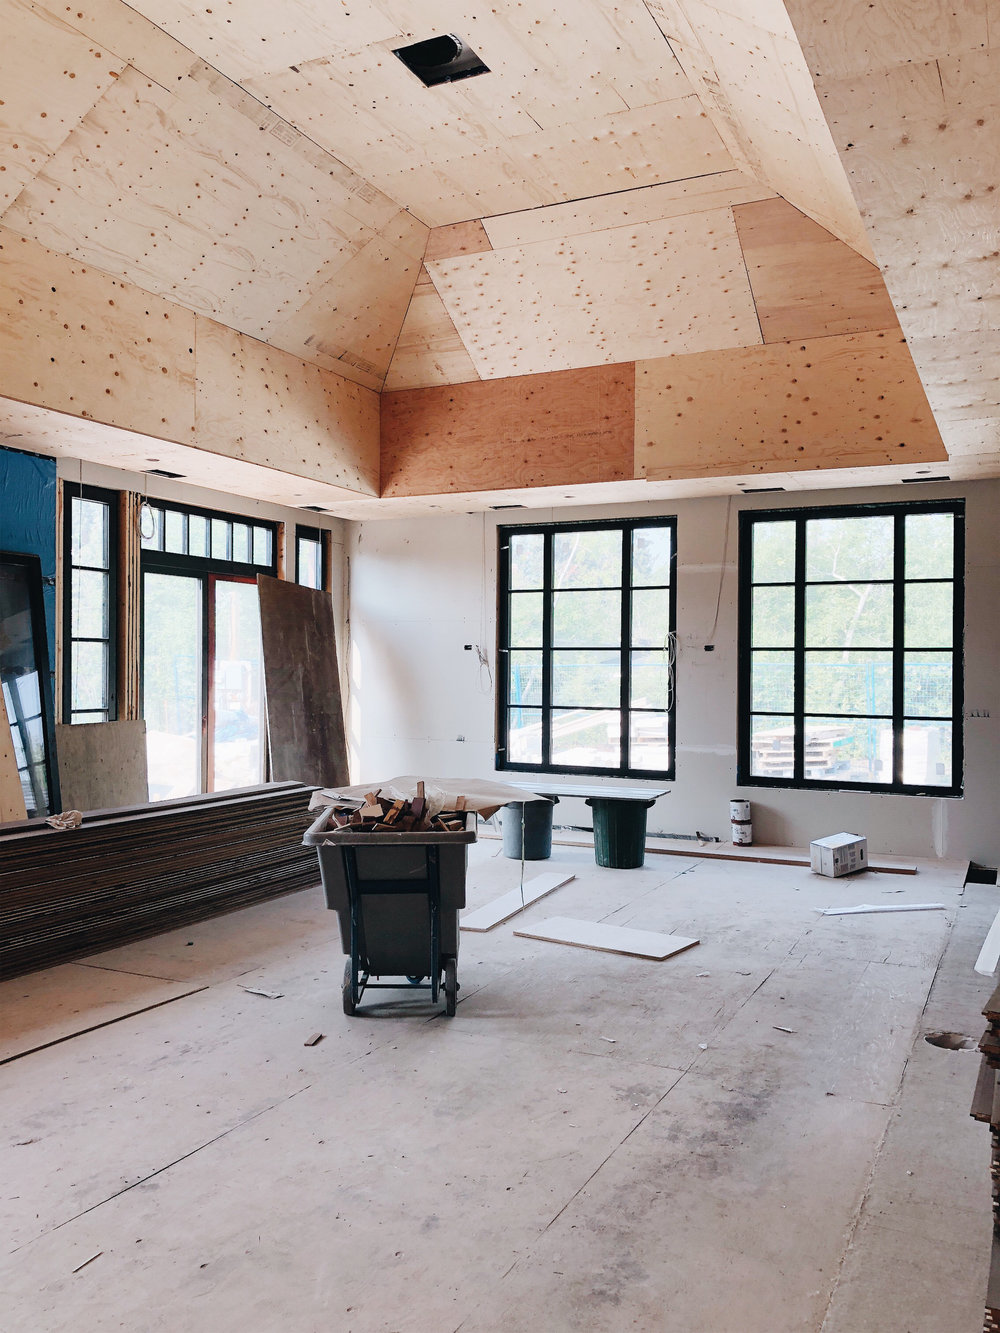 Plywood is installed on the ceiling in preparation for a wood ceiling.